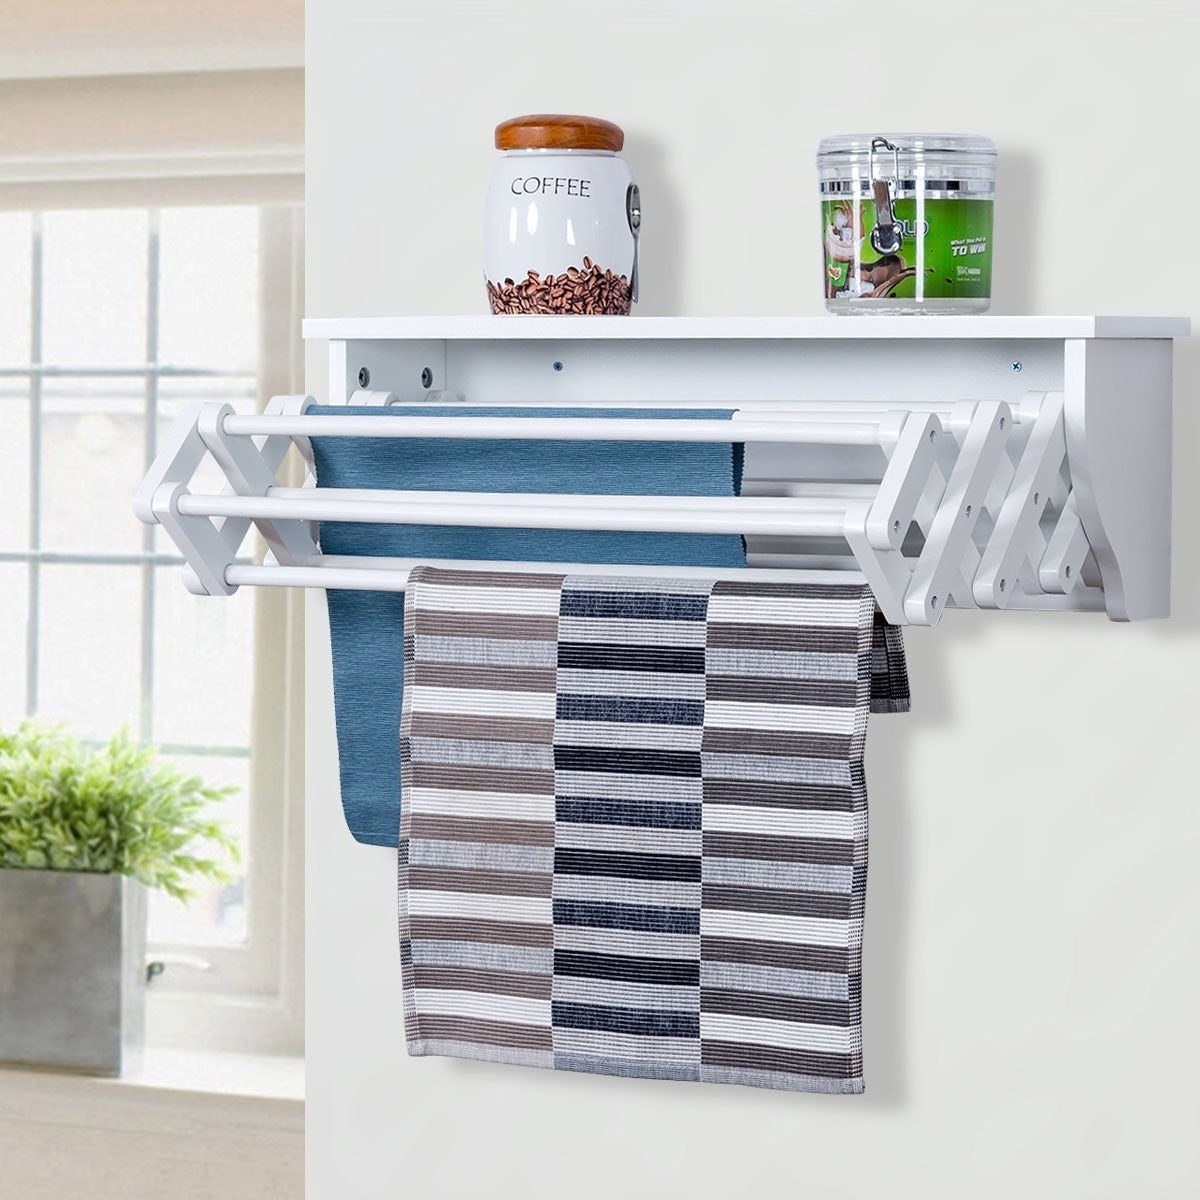 Costway Wall Mounted Drying Rack Folding Clothes Towel Laundry Room Storage Shelf White On Free Shipping Today 18502786